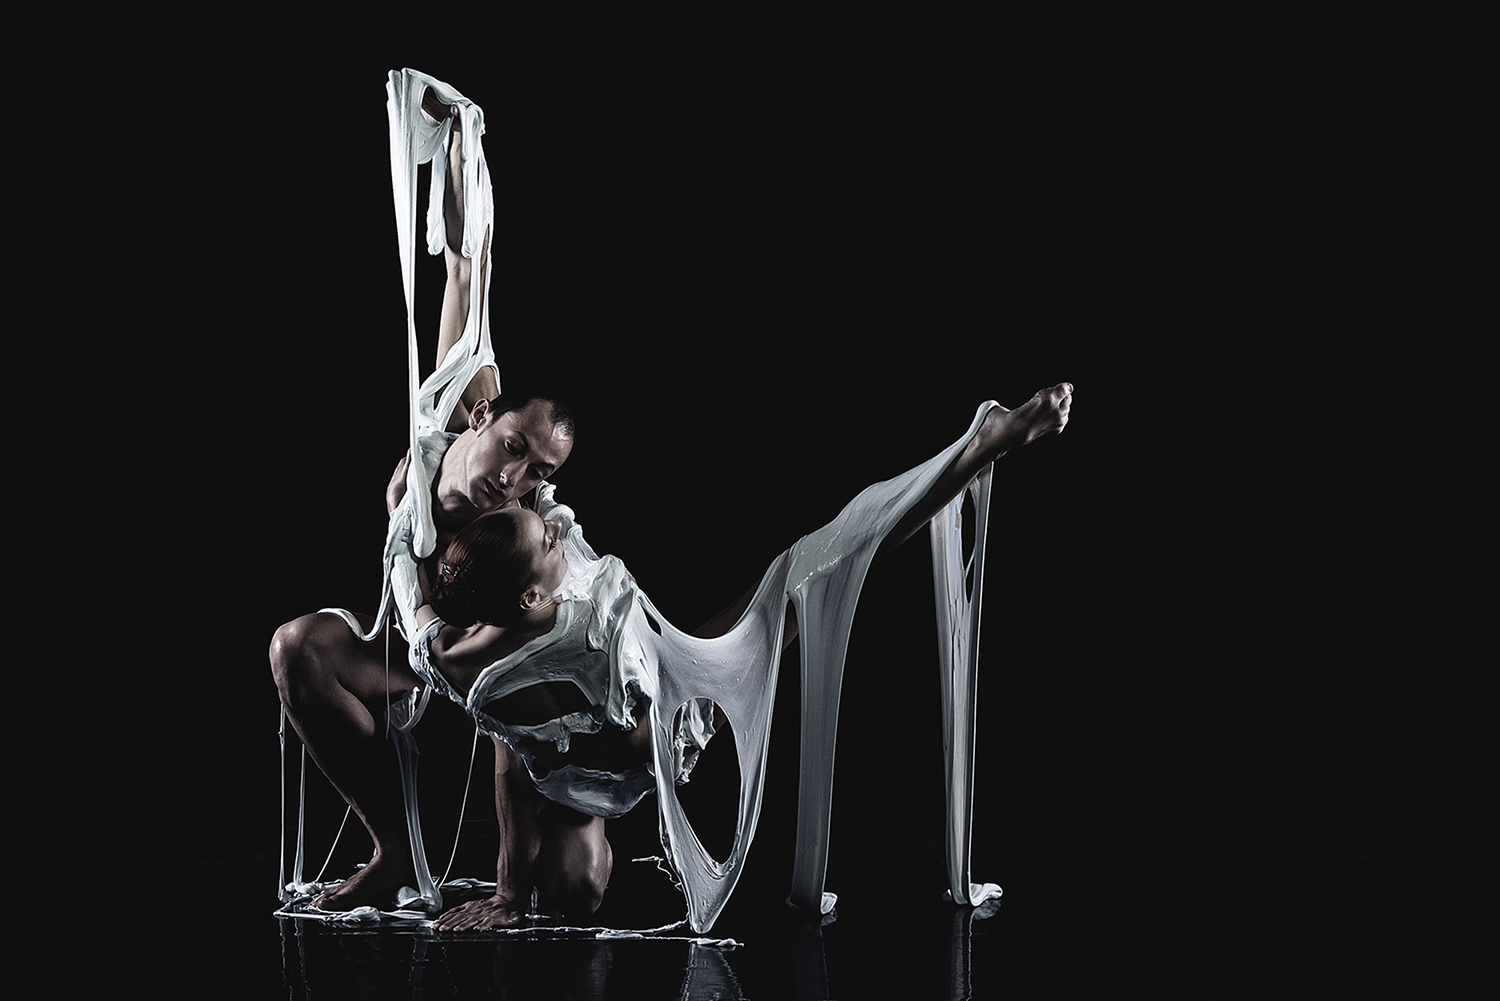 Alessandro Risuleo - Caruso, Bodies and Words - dancing 2